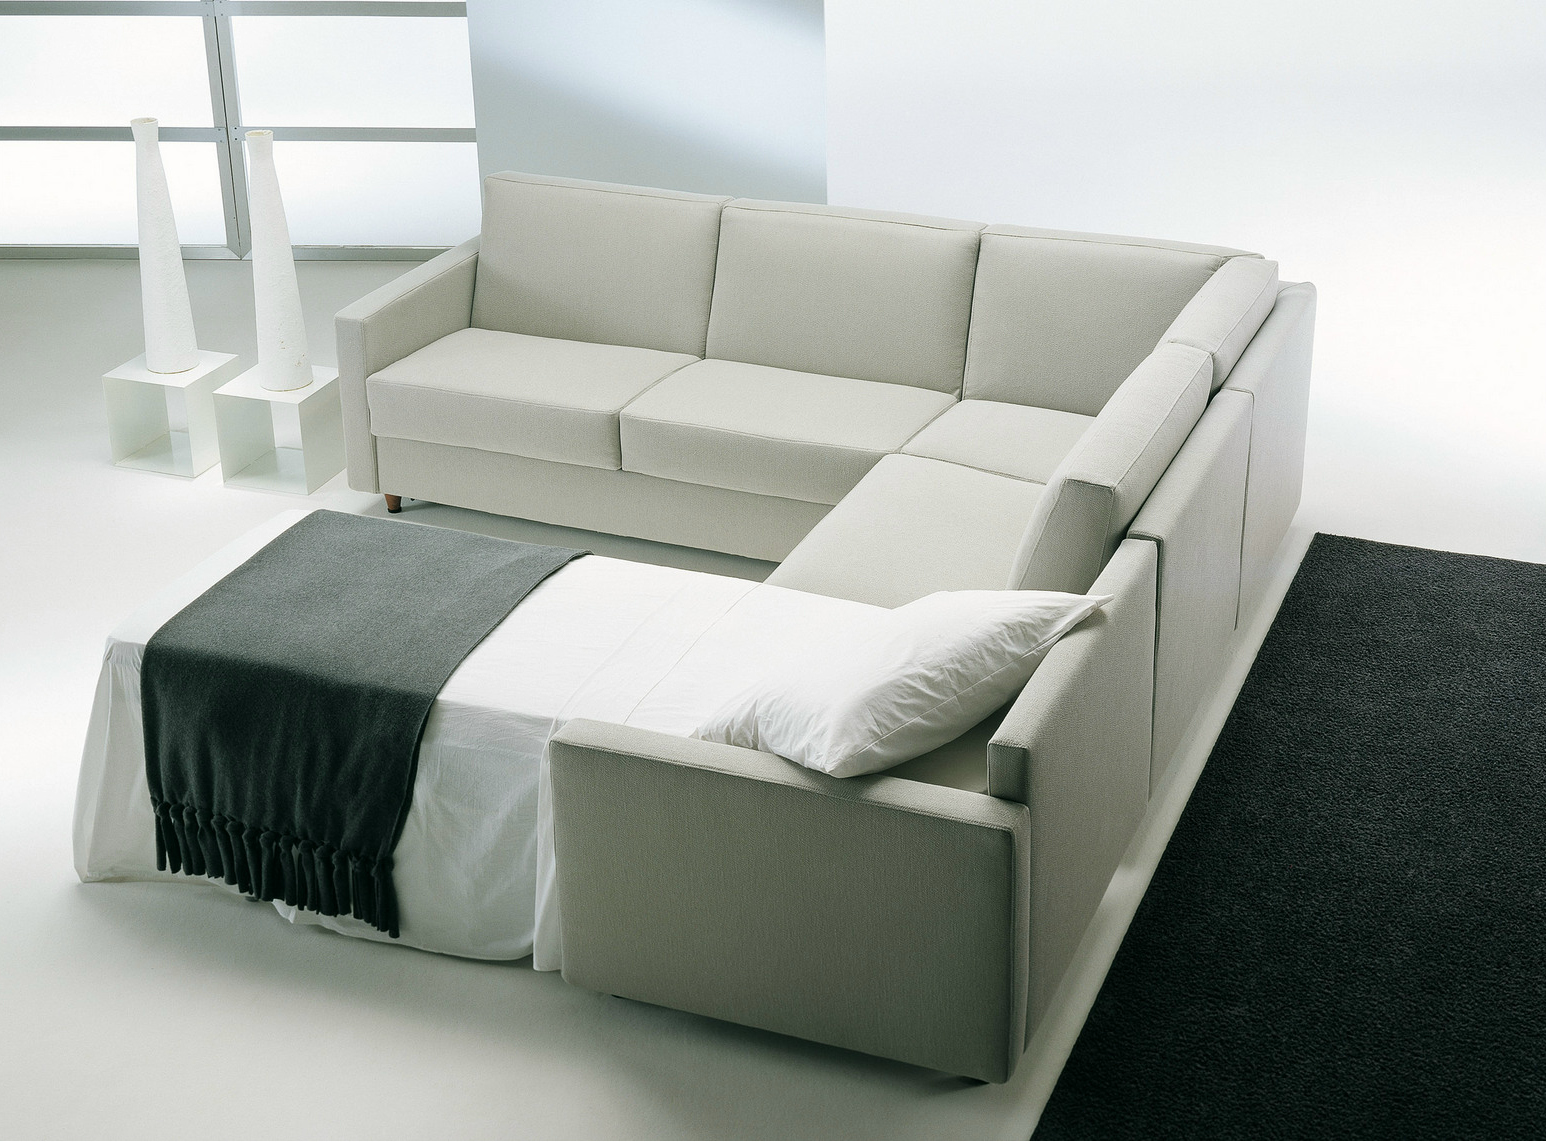 Substantial Convertible Sofa In Soft Color Combination